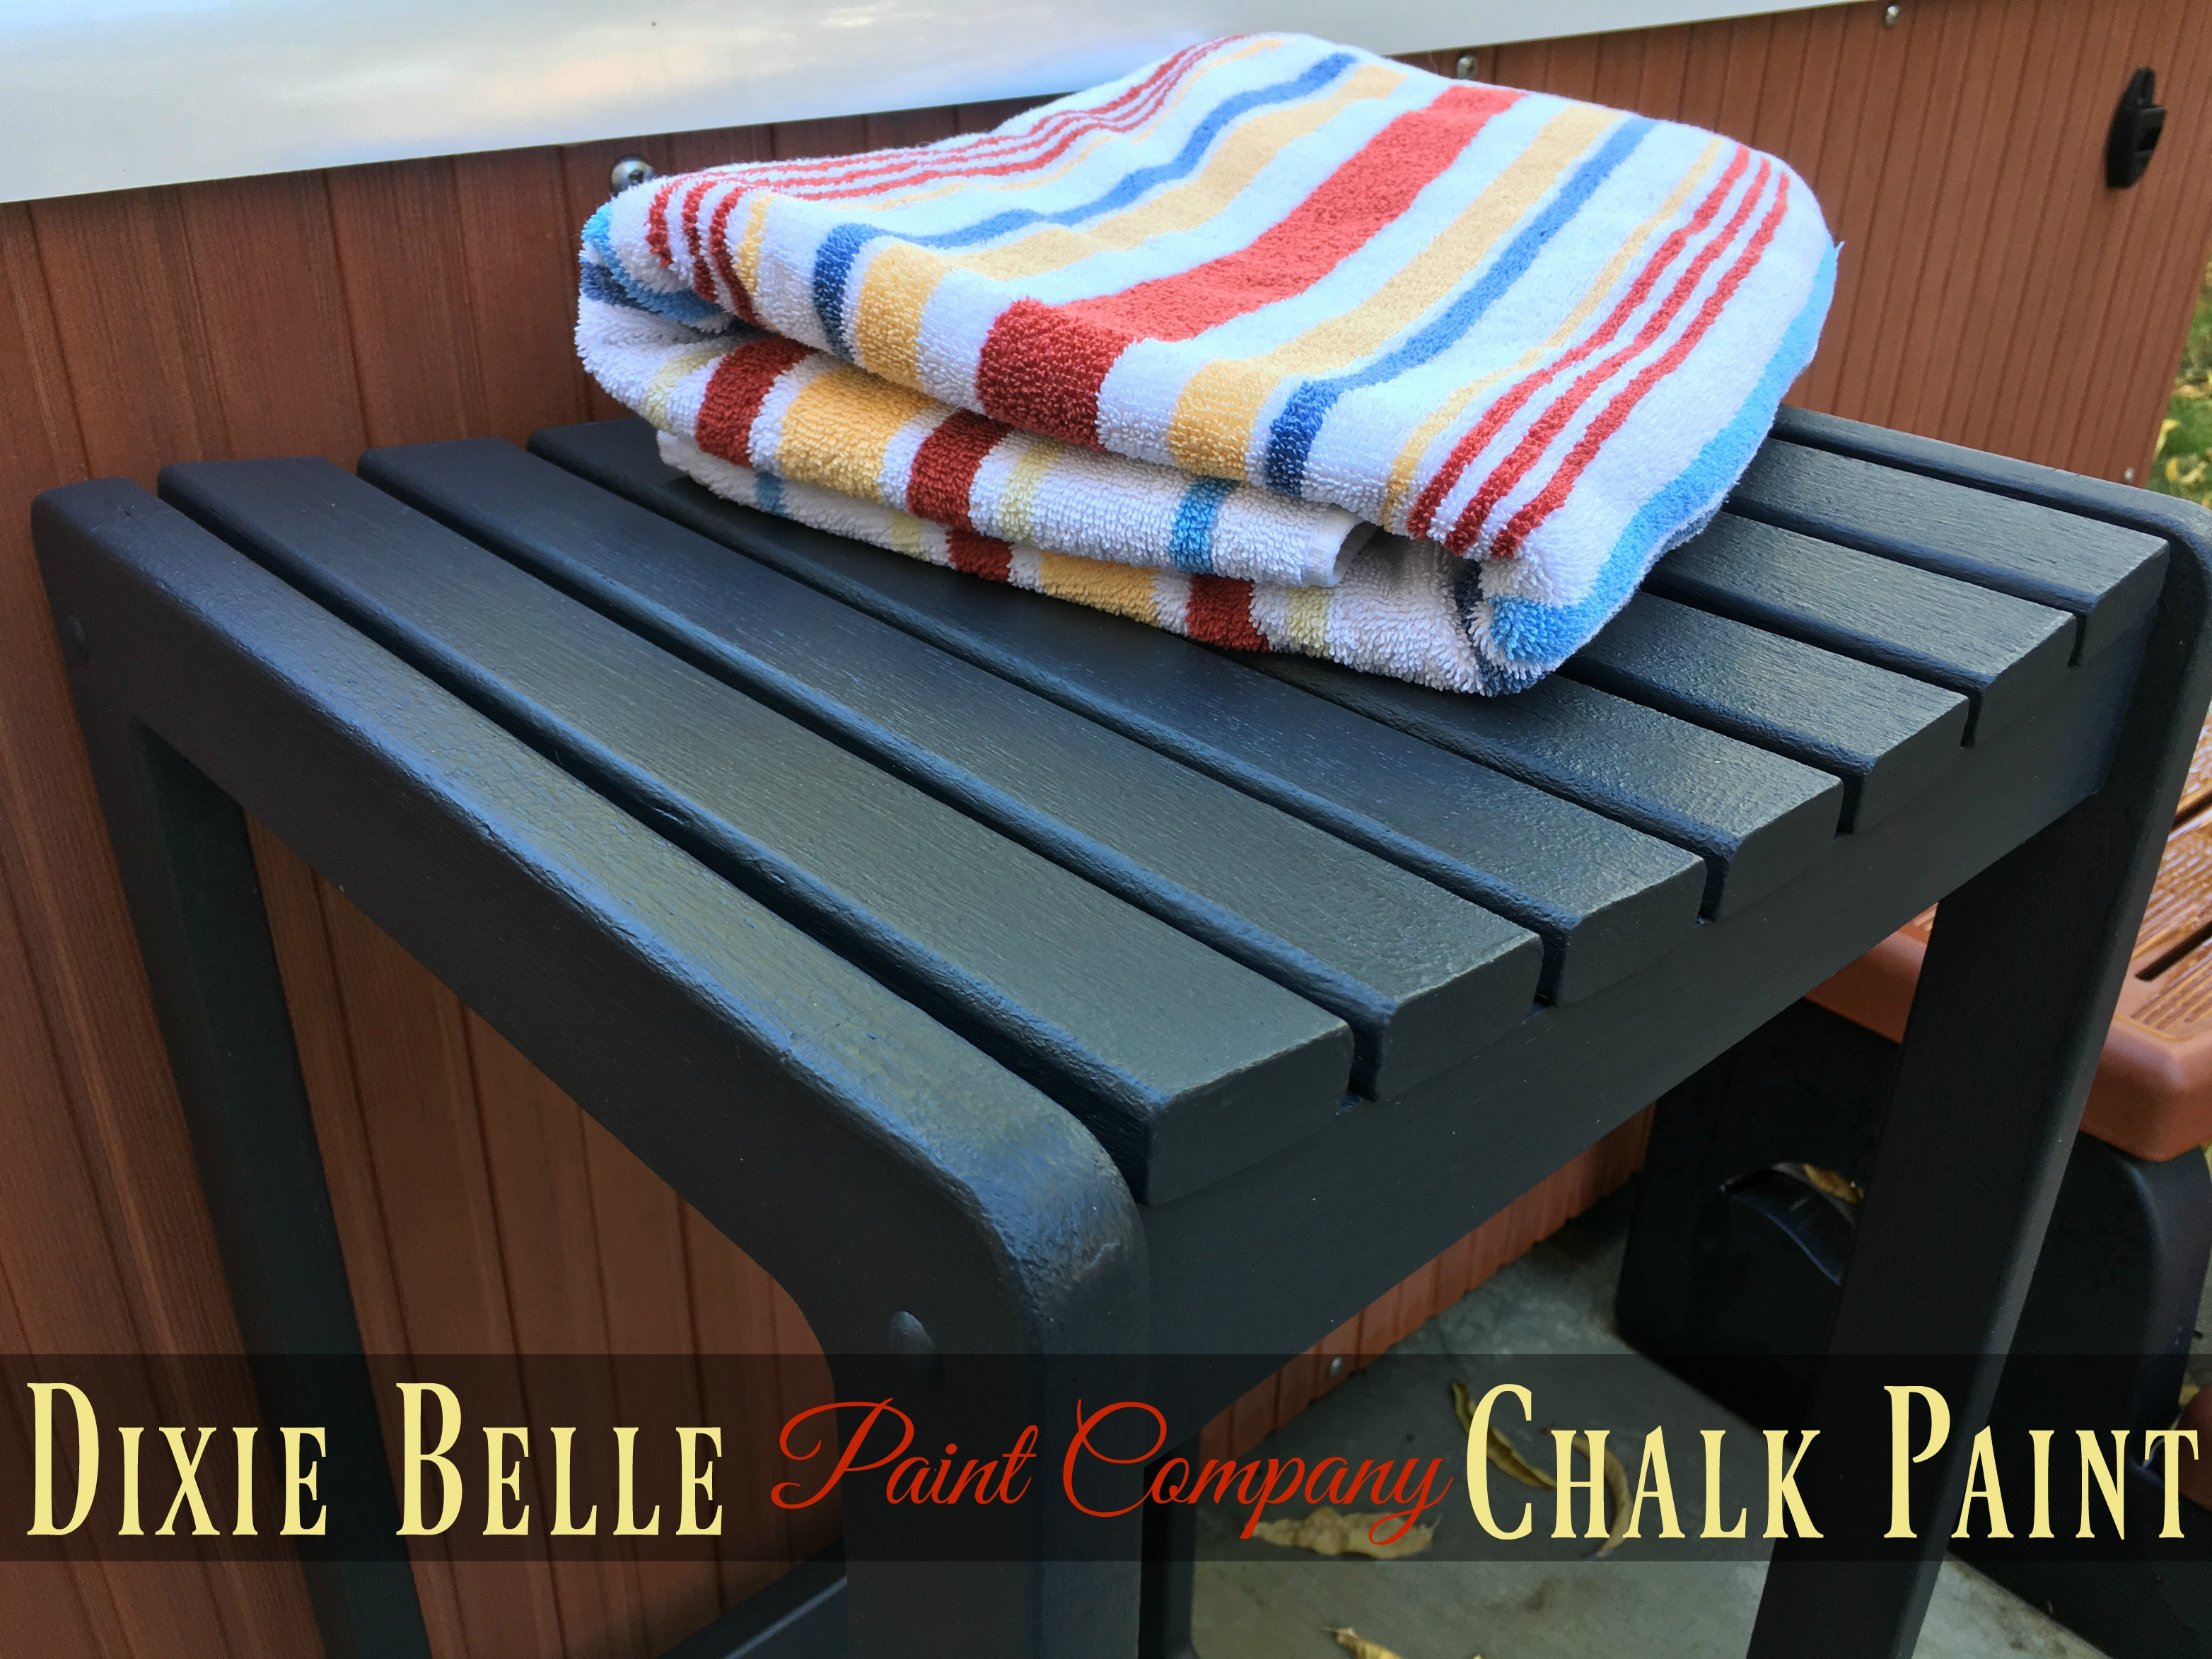 Dixie Belle Chalk Paint